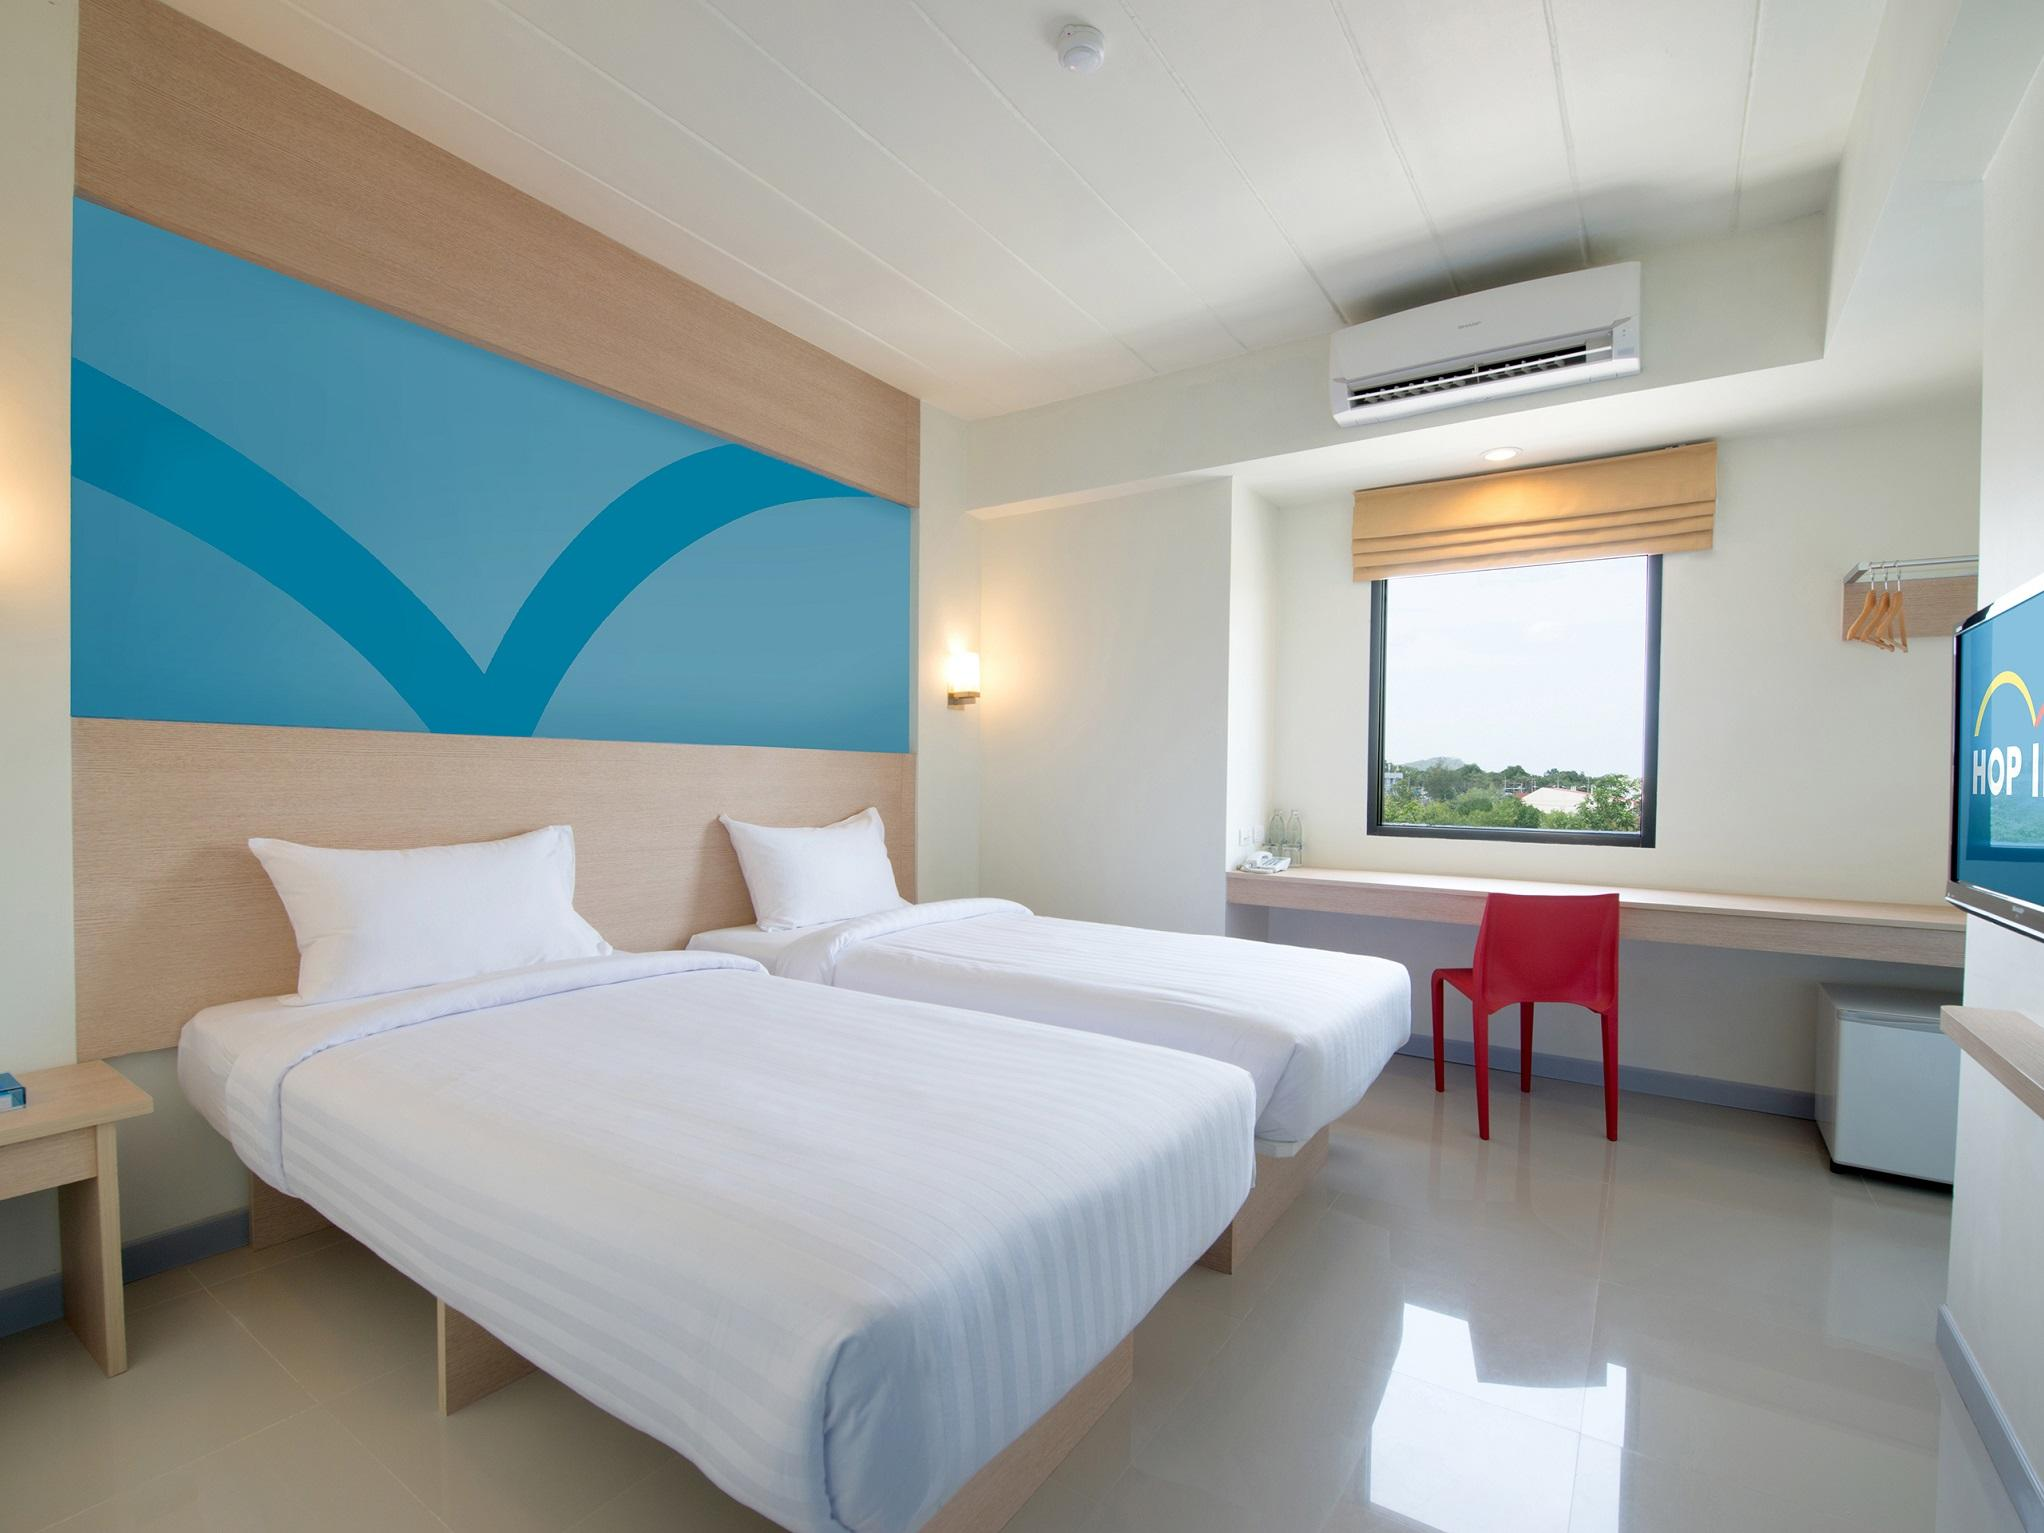 5. TwinRoom at Hop Inn Hotel